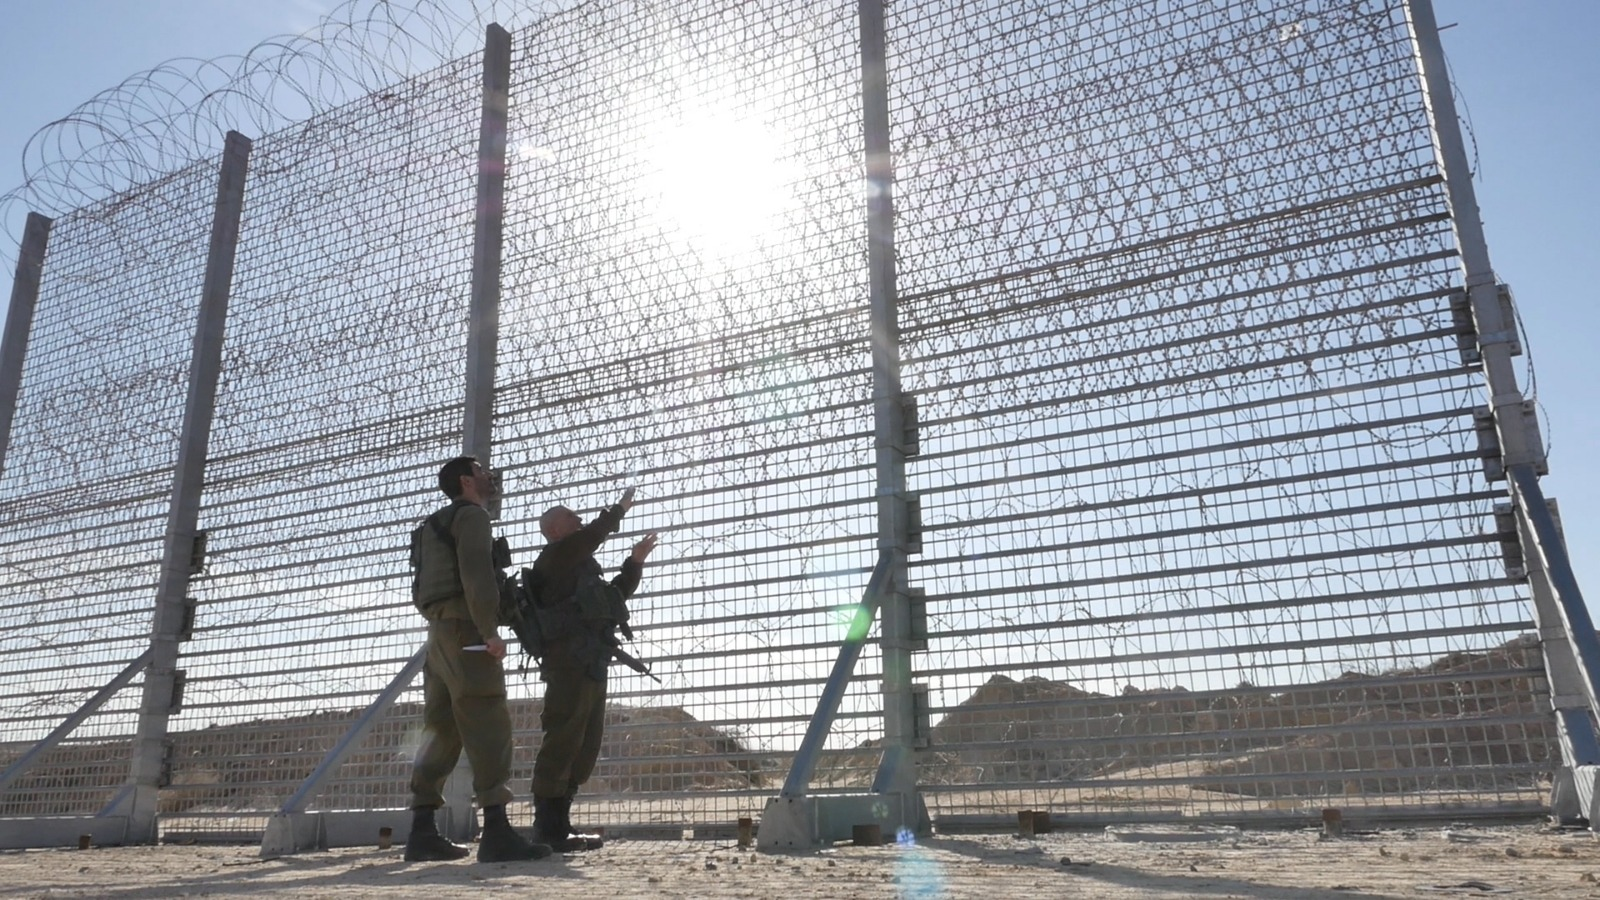 Israel Starts Construction On 20 Foot High Fence Surrounding Gaza The Times Of Israel